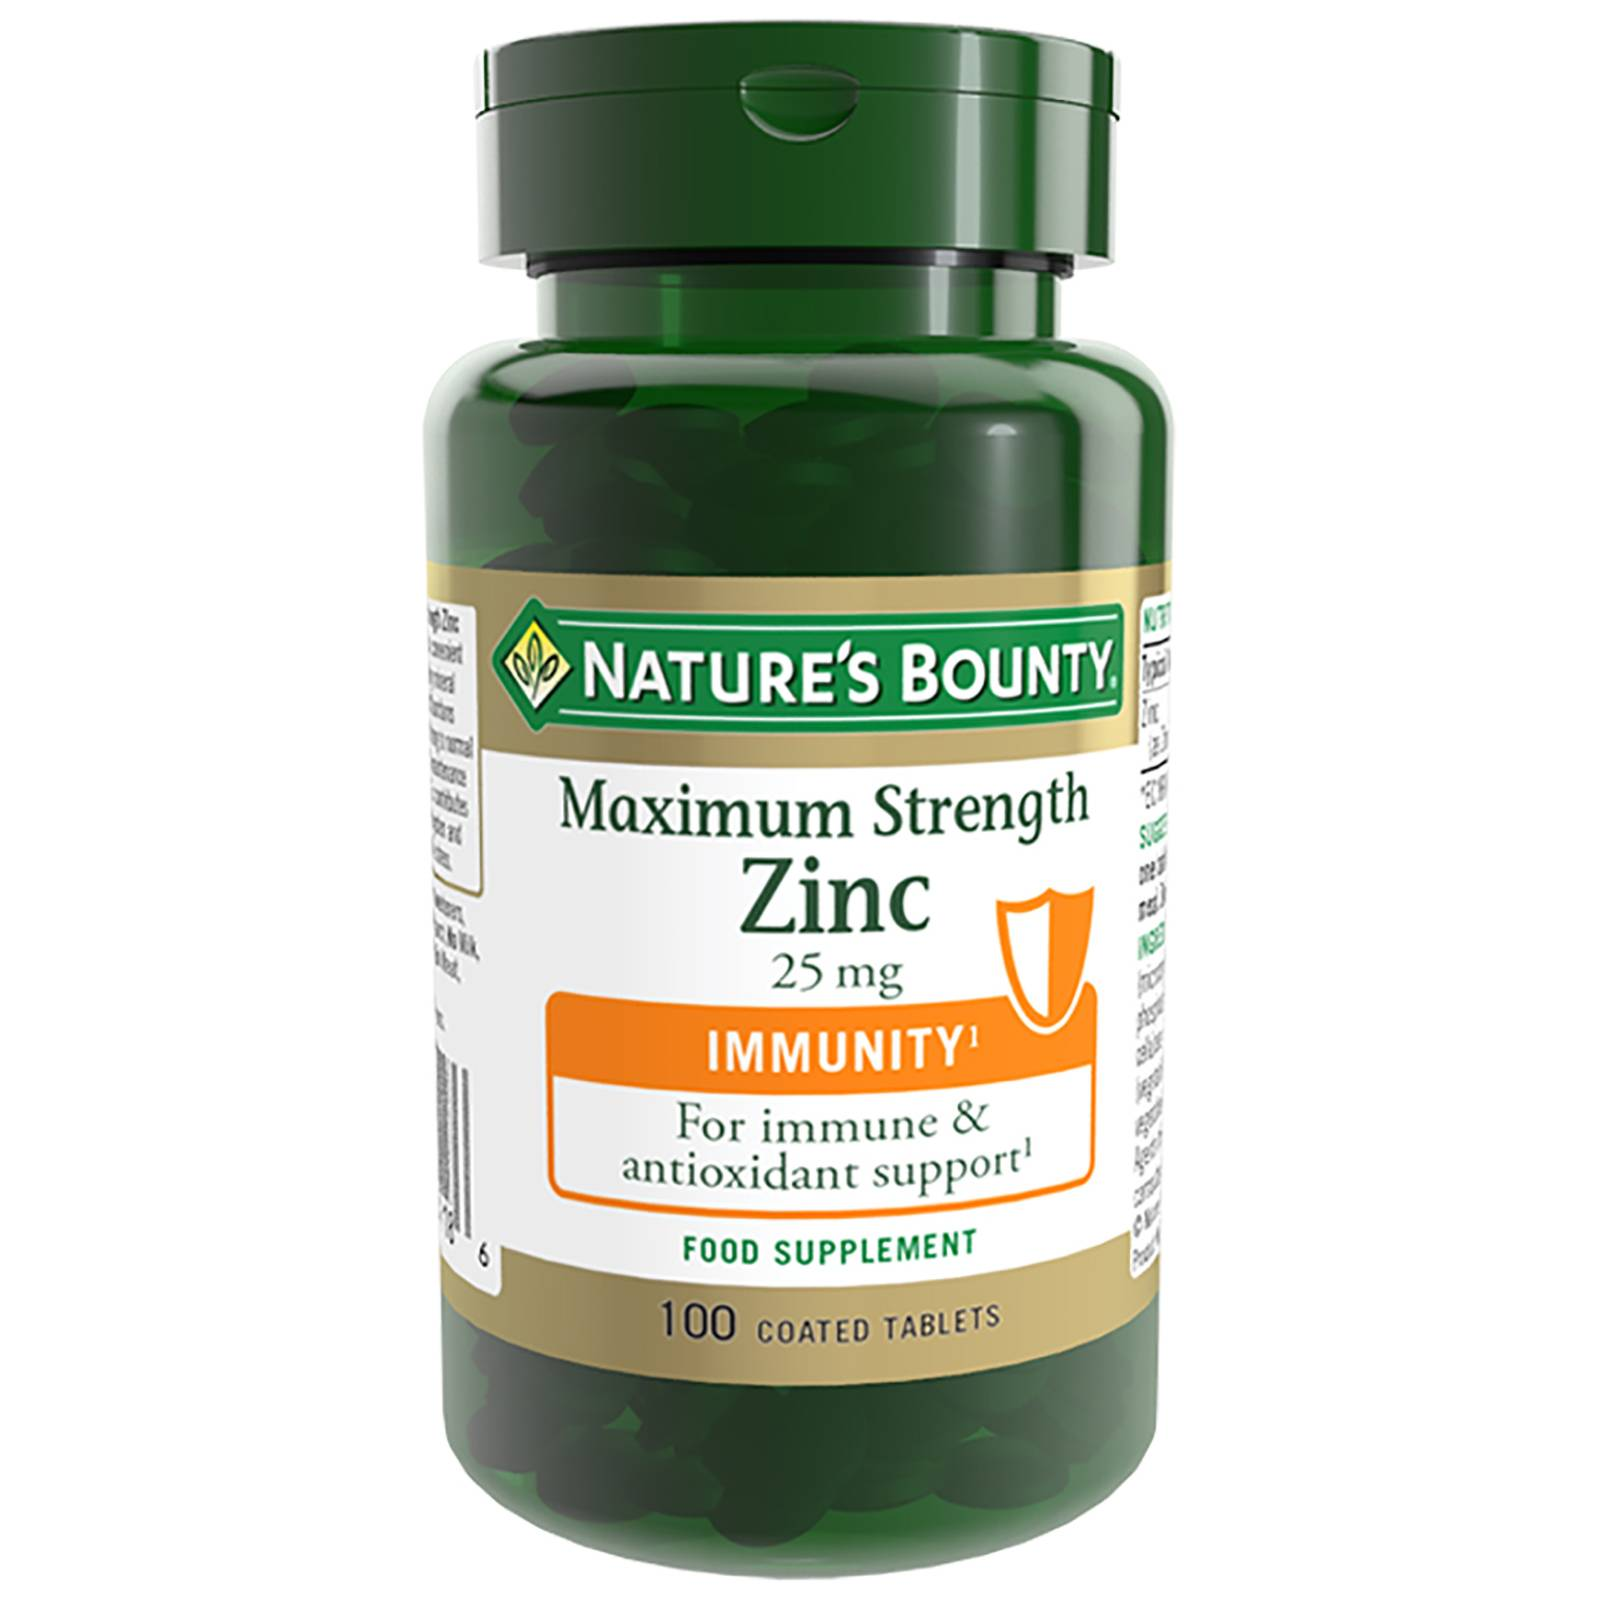 Nature's Bounty - Maximum Strength Zinc 25mg Coated Tablets x 100 for Men and Women